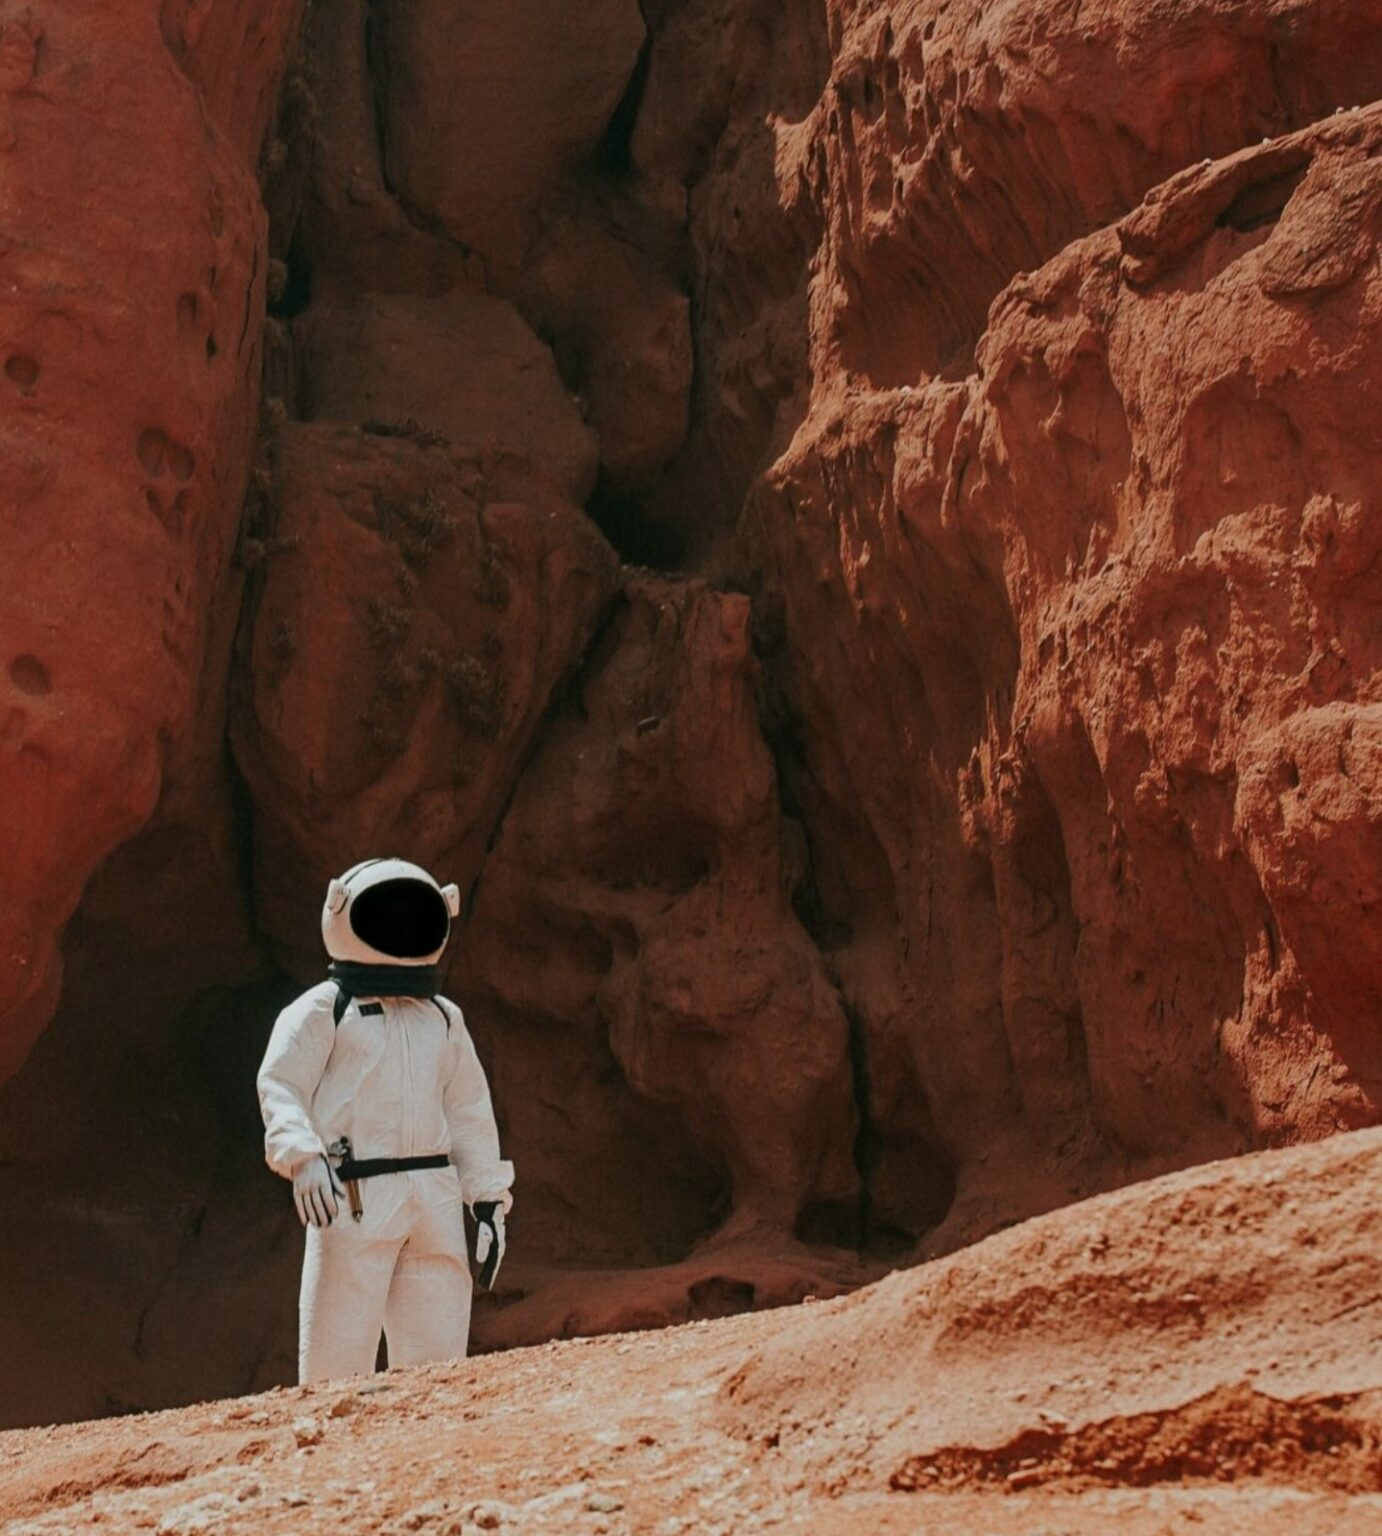 Seeing Space Differently Astronaut on Mars exploring